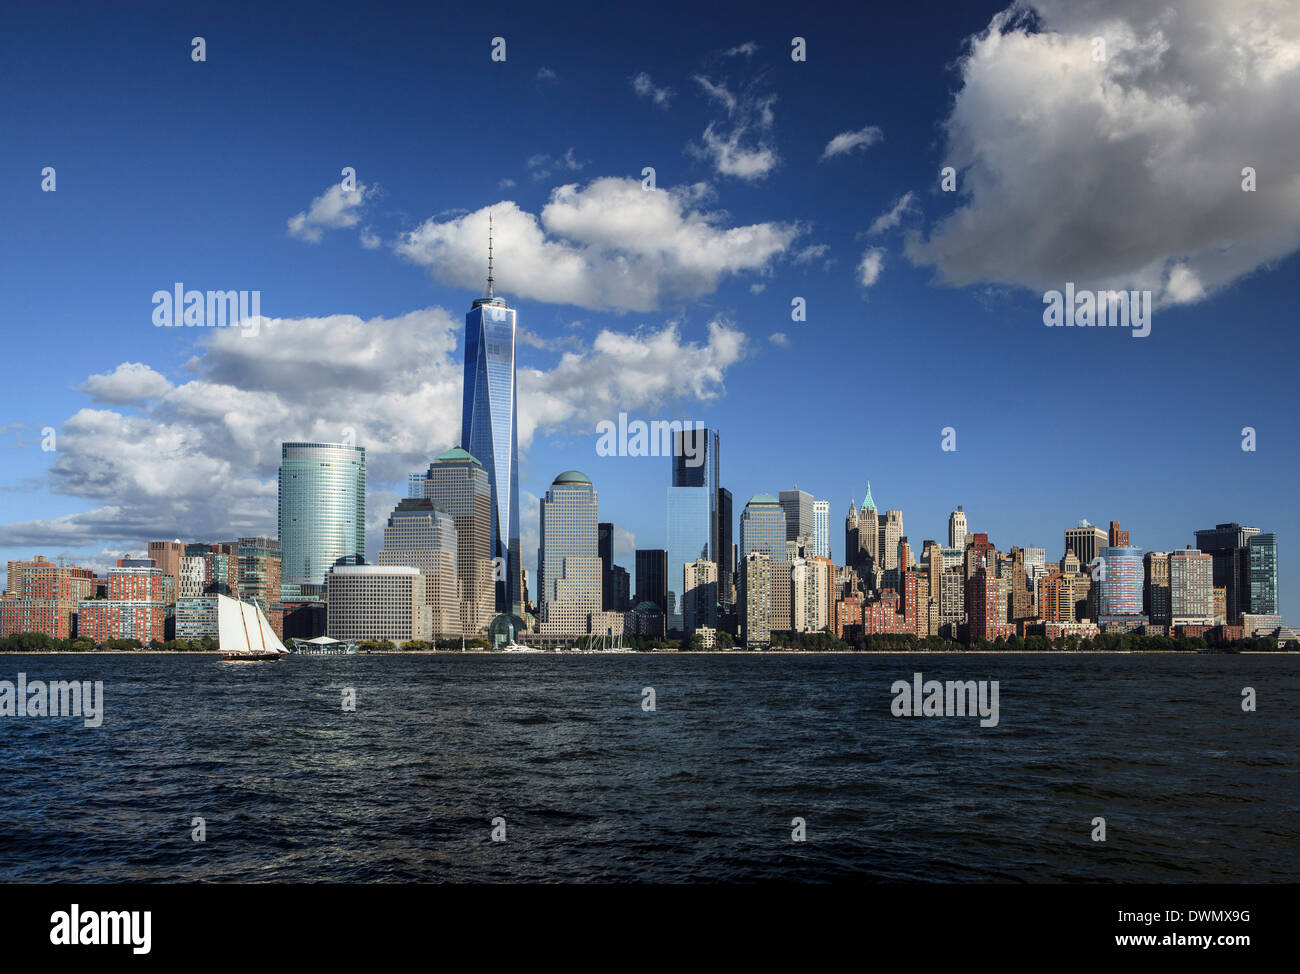 Manhattan financial district skyline as seen from Jersey City, New York, United States of America, North America - Stock Image